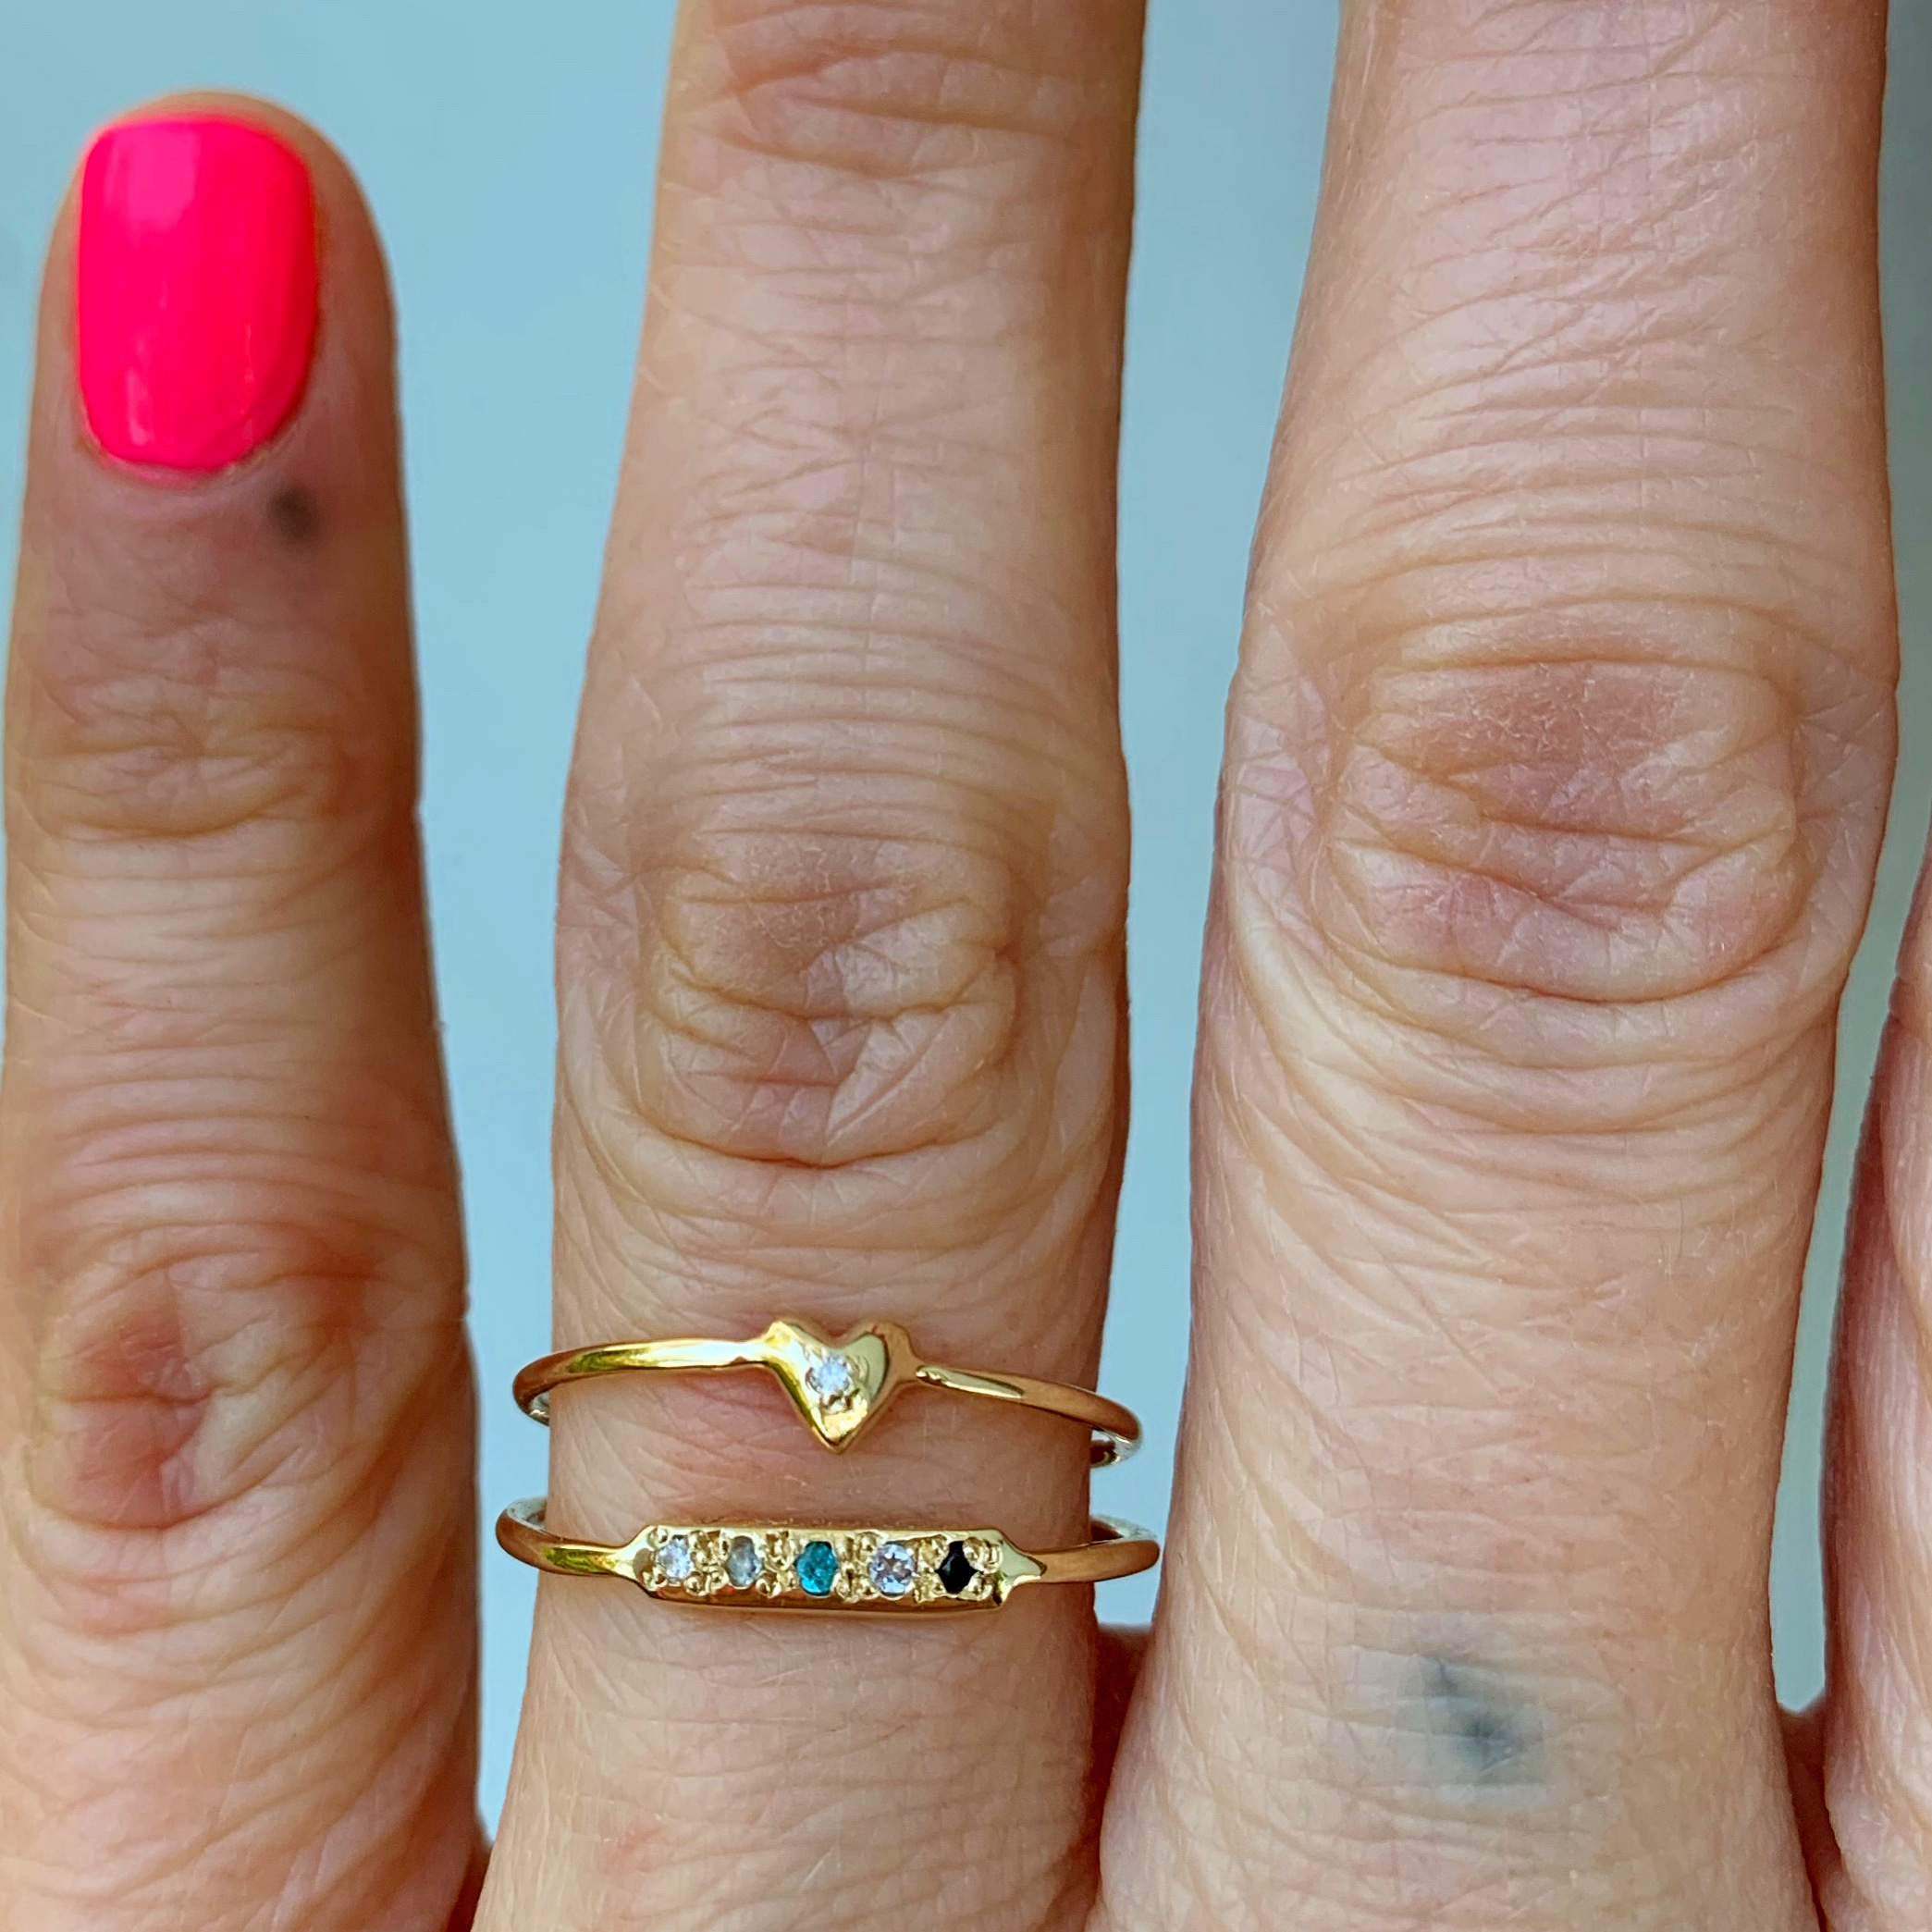 wearing the skinny bar ring